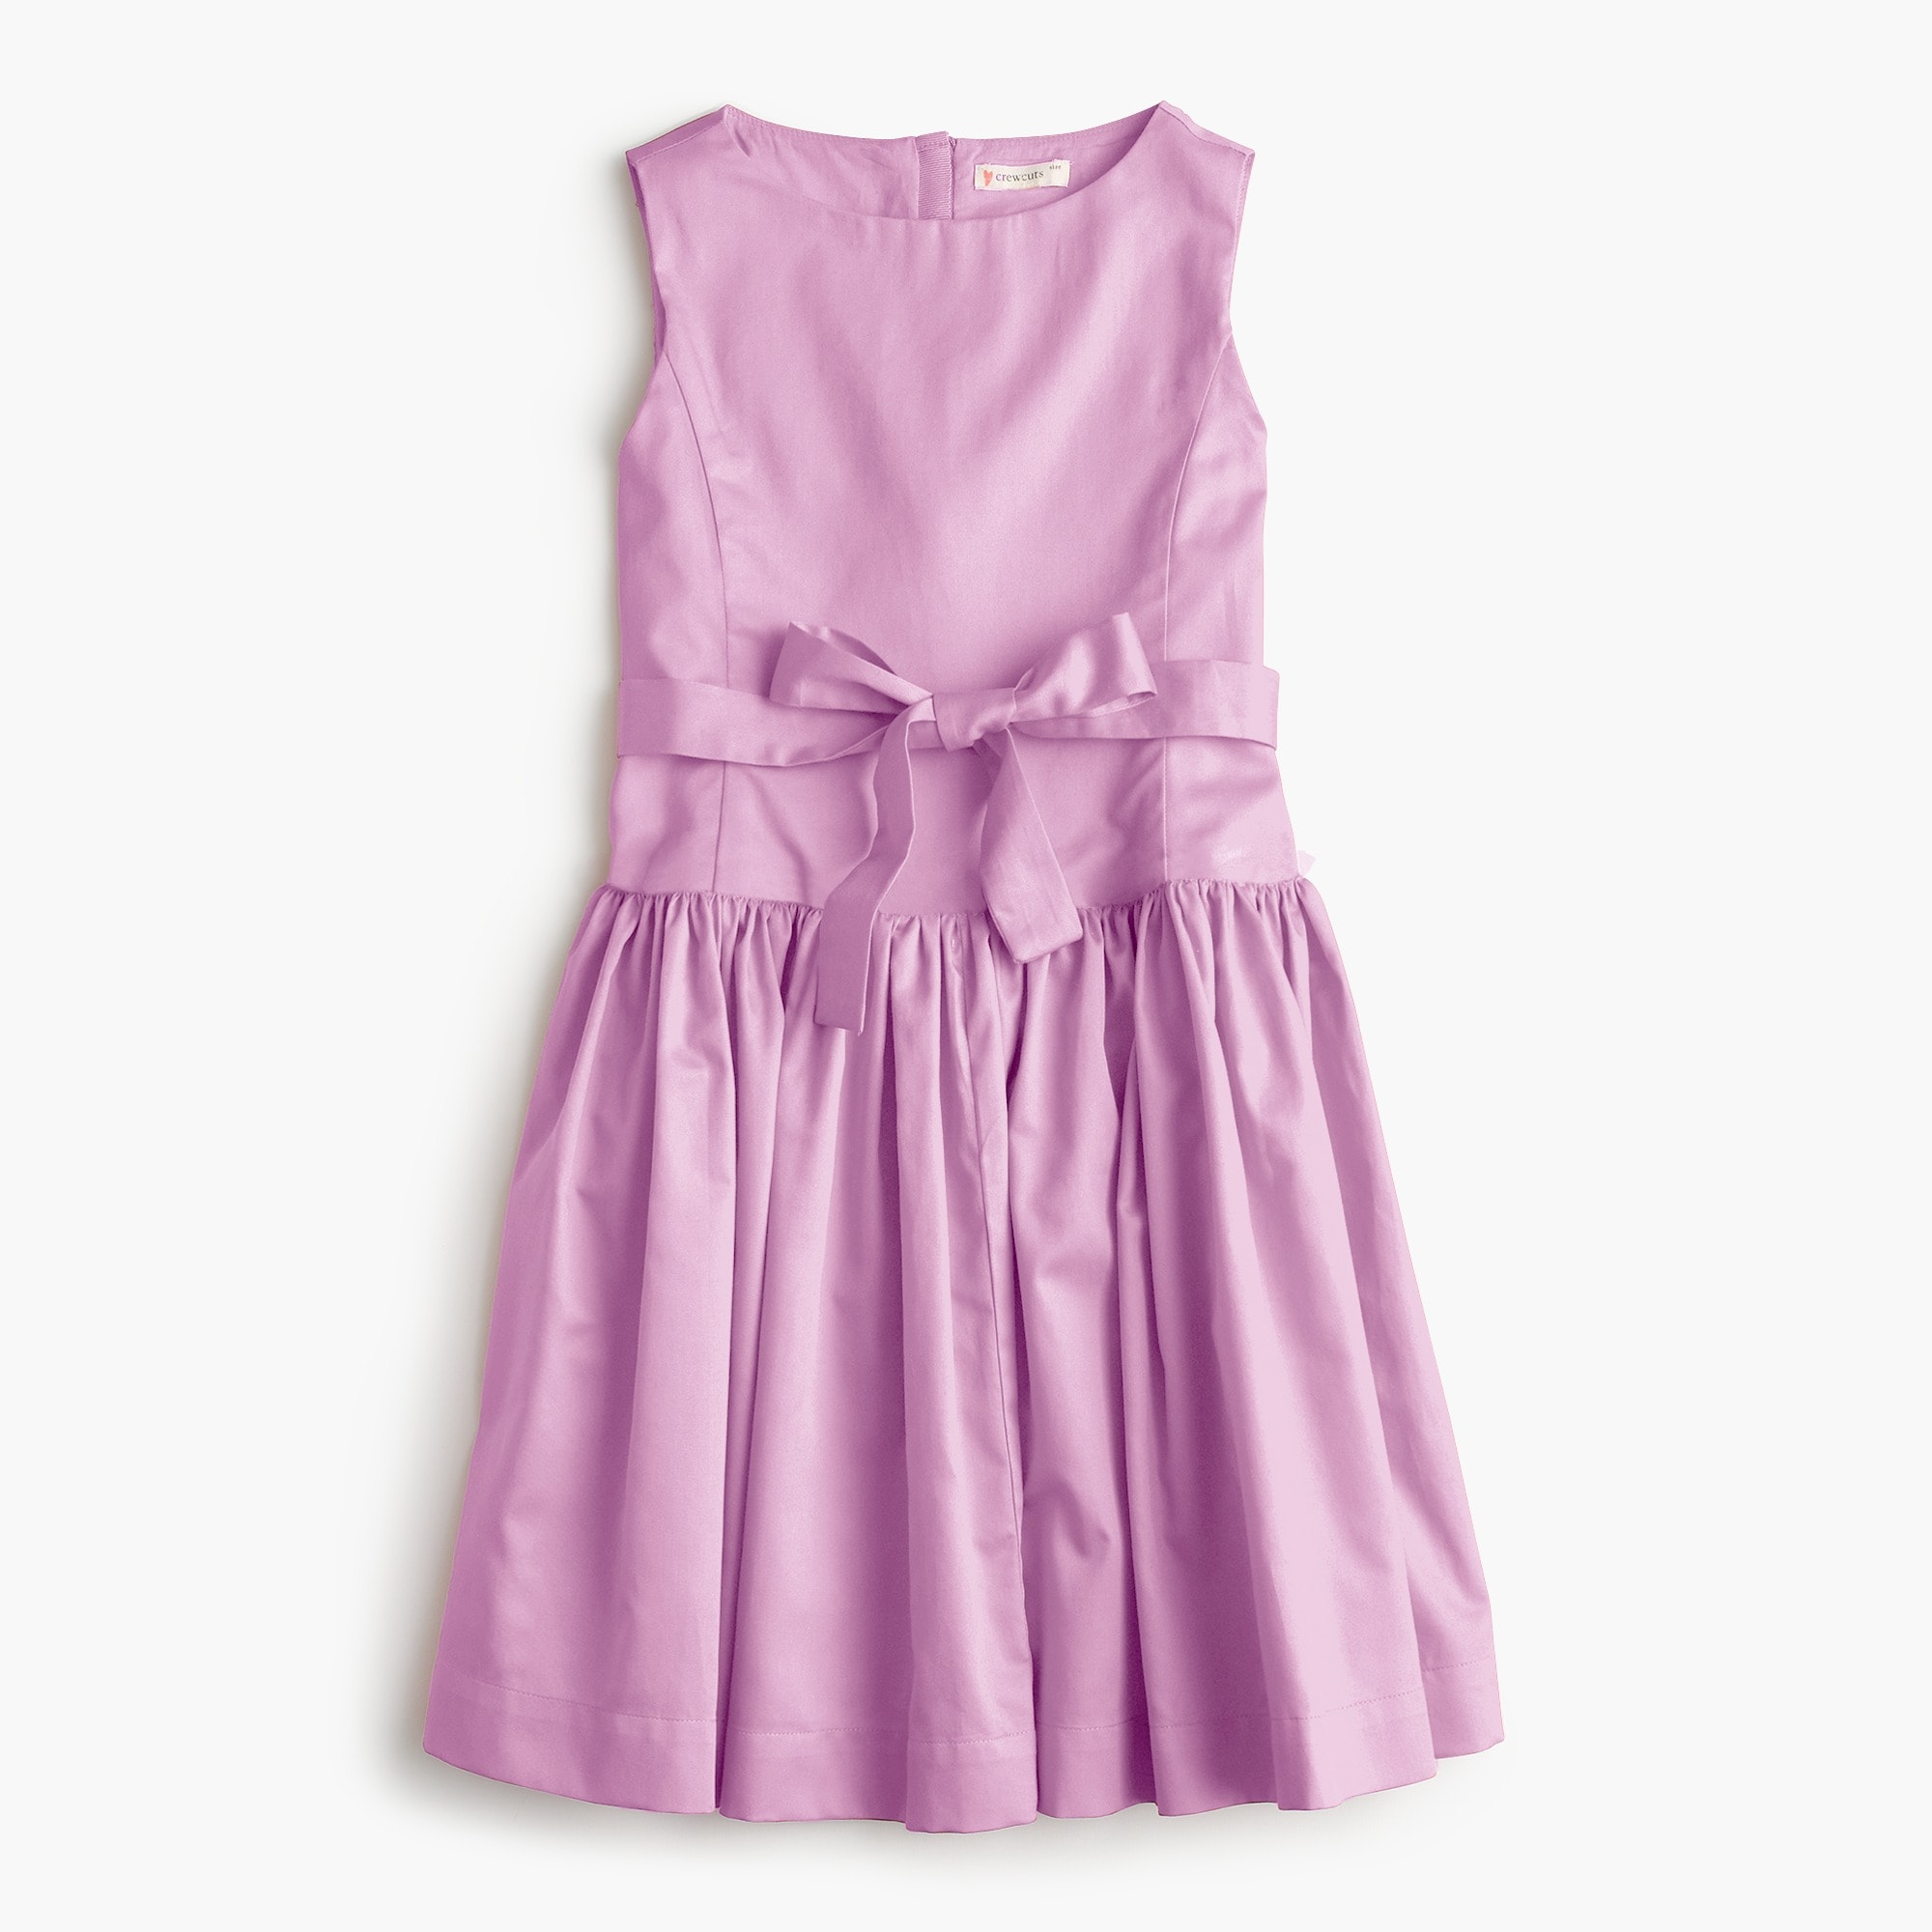 Girls' tie-waist dress girl dresses & jumpsuits c